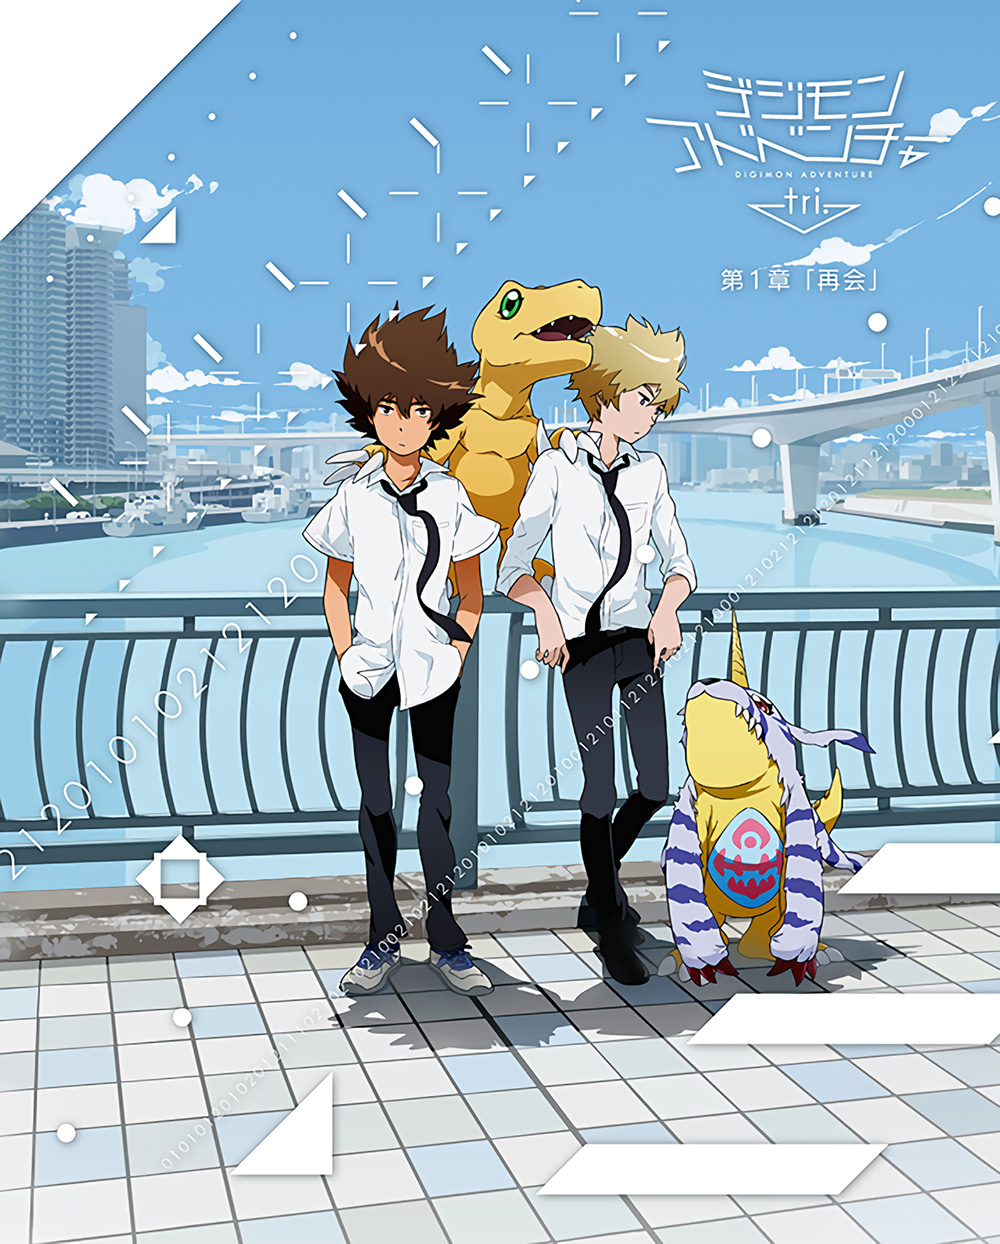 Digimon-Adventure-tri.-Episode-1-Digipak-Visual